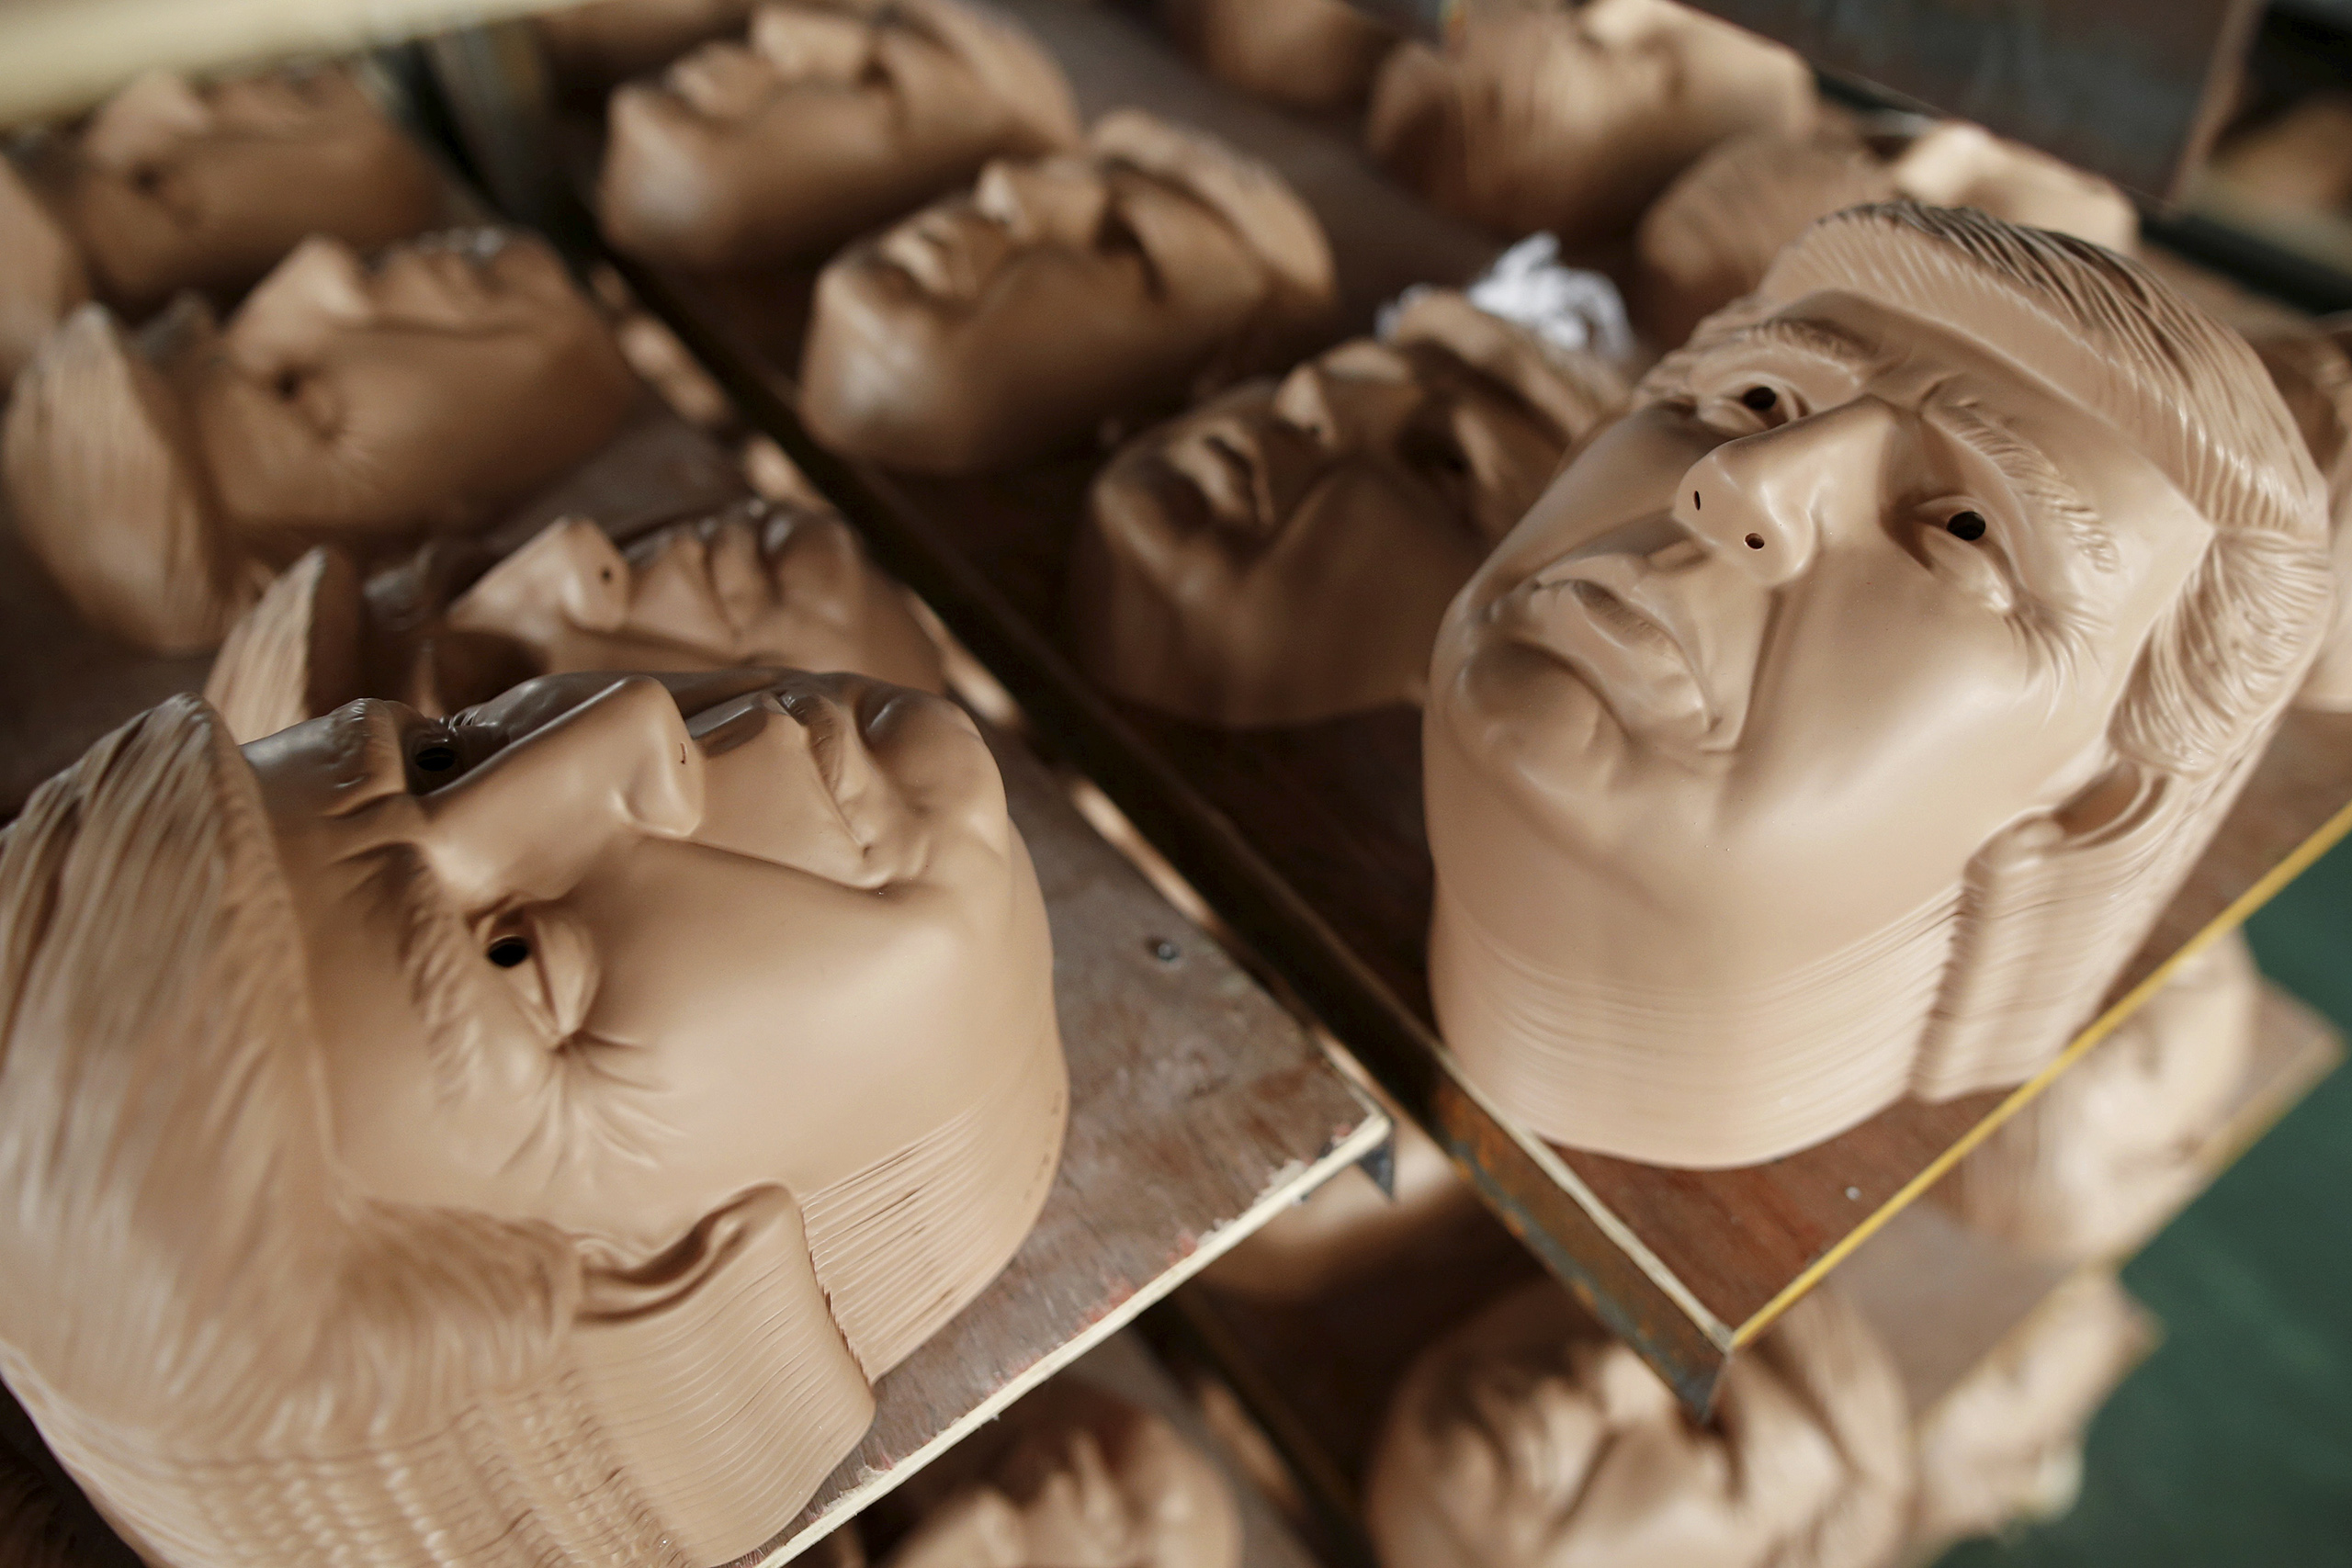 Masks of Republican presidential candidate Donald Trump dry on shelves at Jinhua Partytime Latex Art and Crafts Factory in Jinhua, Zhejiang Province, China, May 25, 2016.